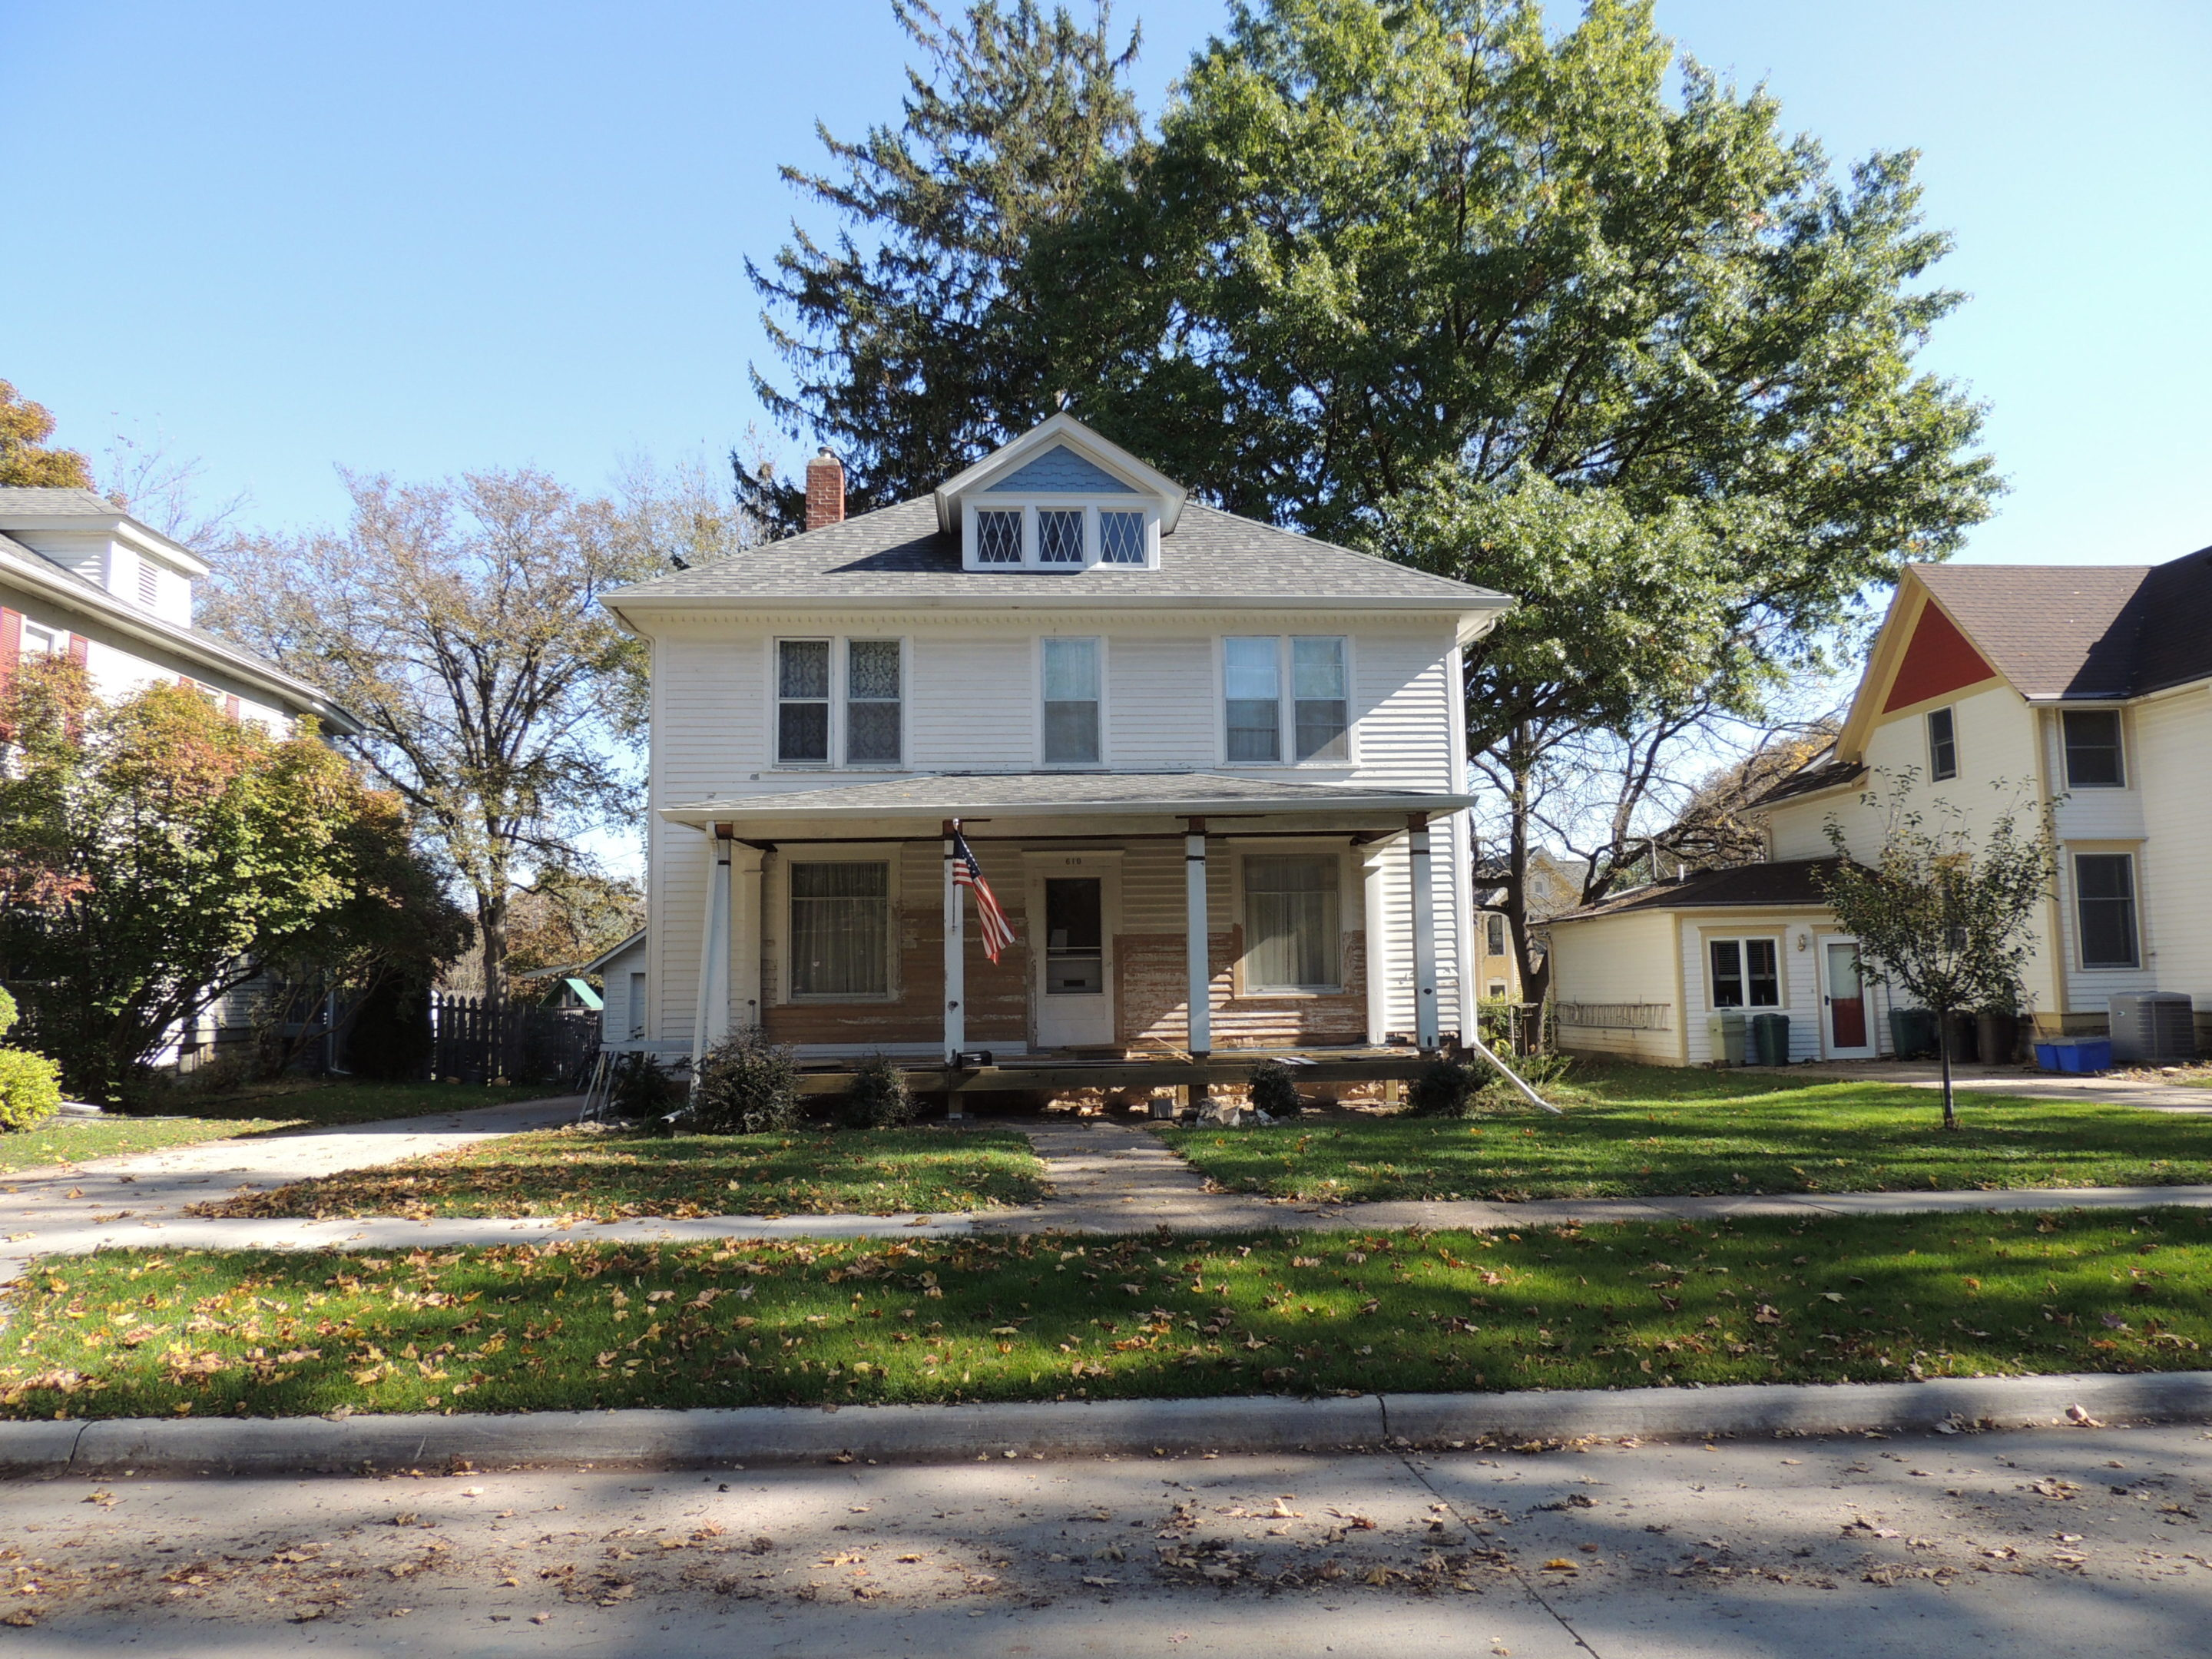 Photo of house at 610 5th Avenue